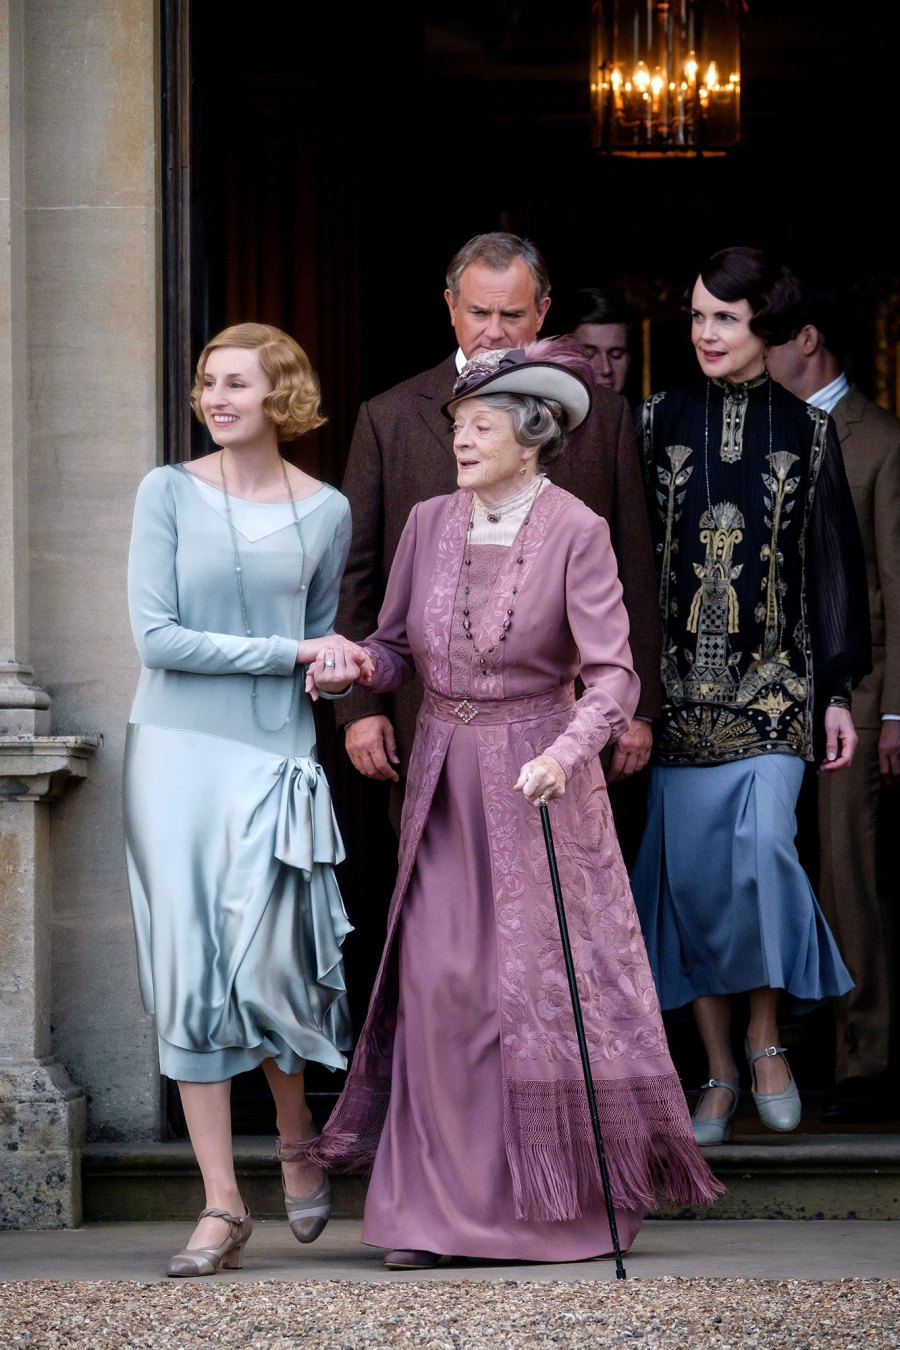 Why a Second Film Downton Abbey Returning for a Second Film